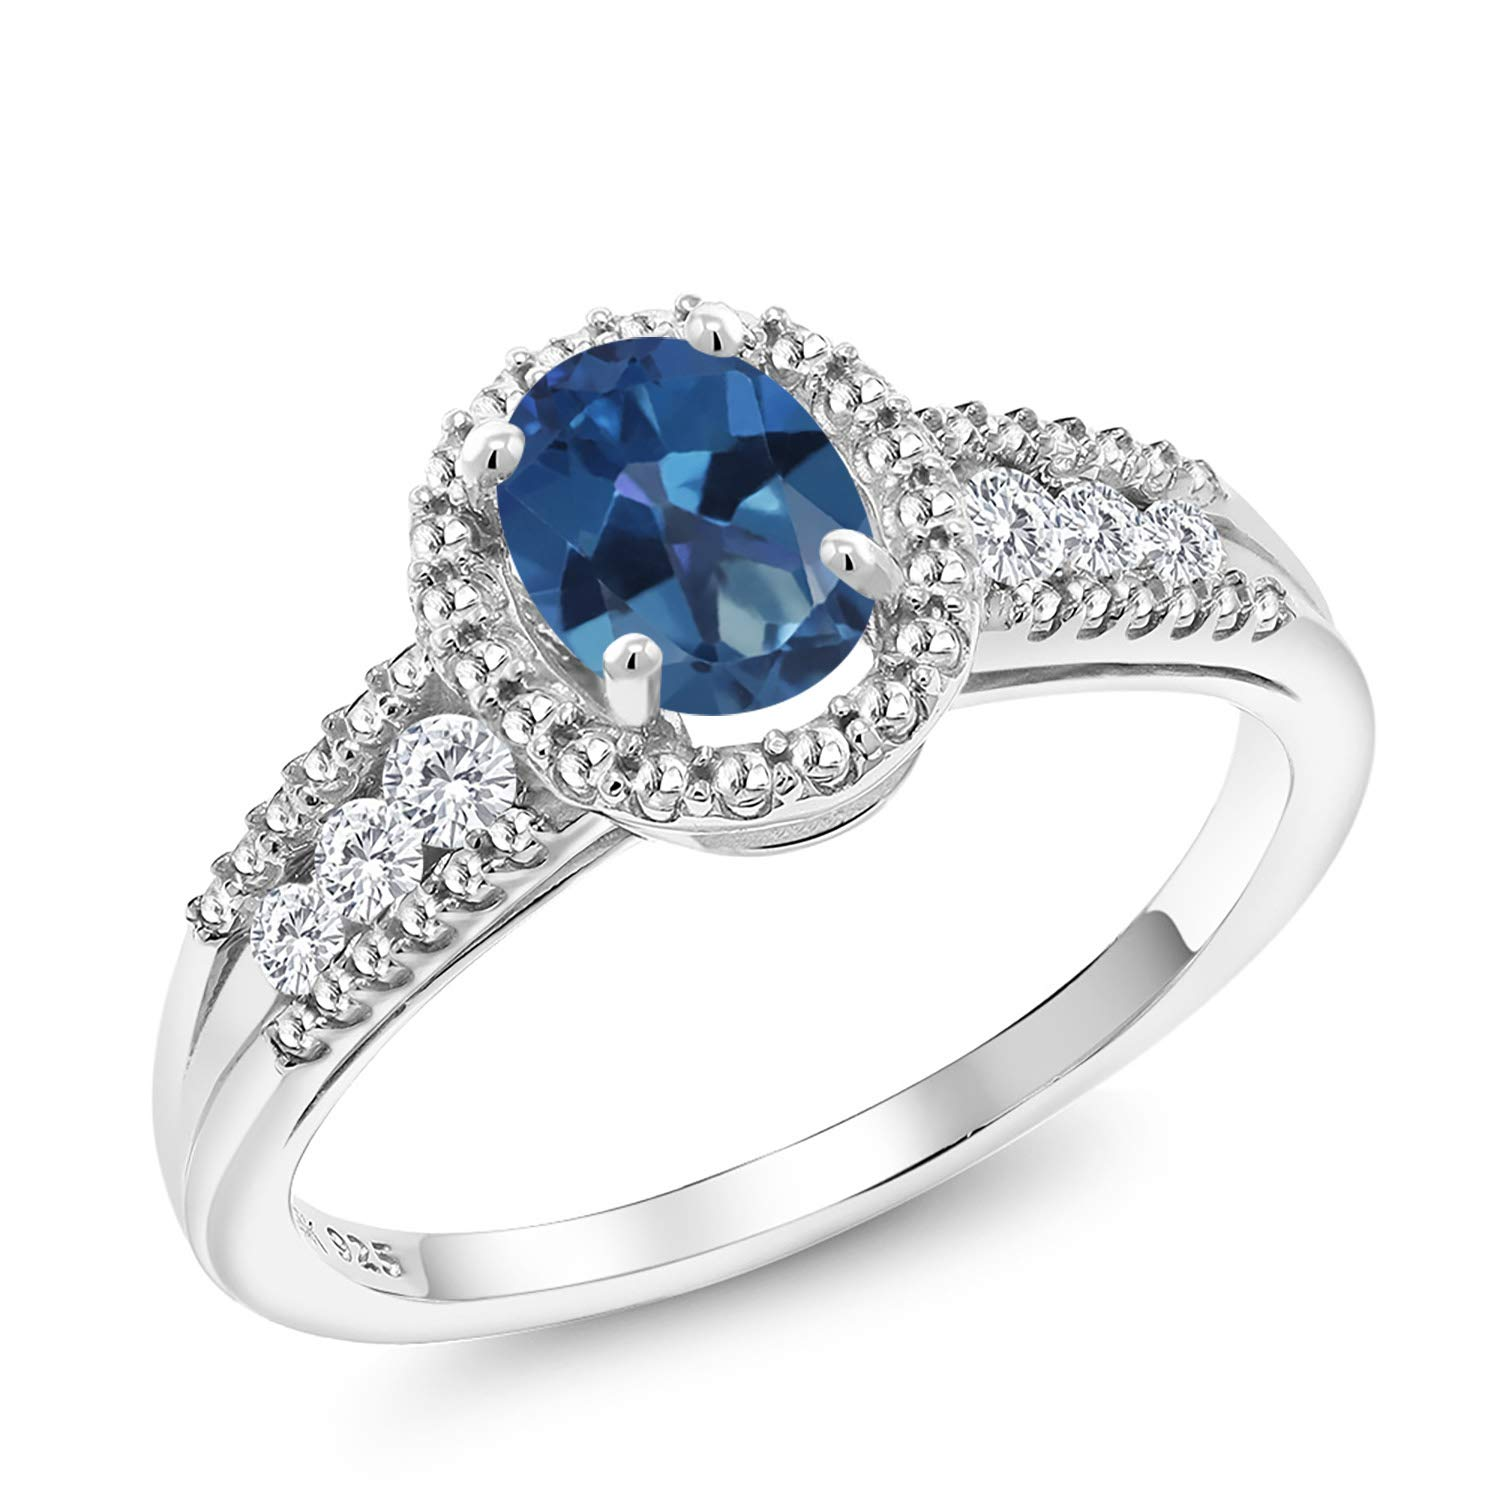 Gem Stone King 1.04 Ct Oval Blue Mystic Topaz White Created Sapphire 925 Sterling Silver Ring